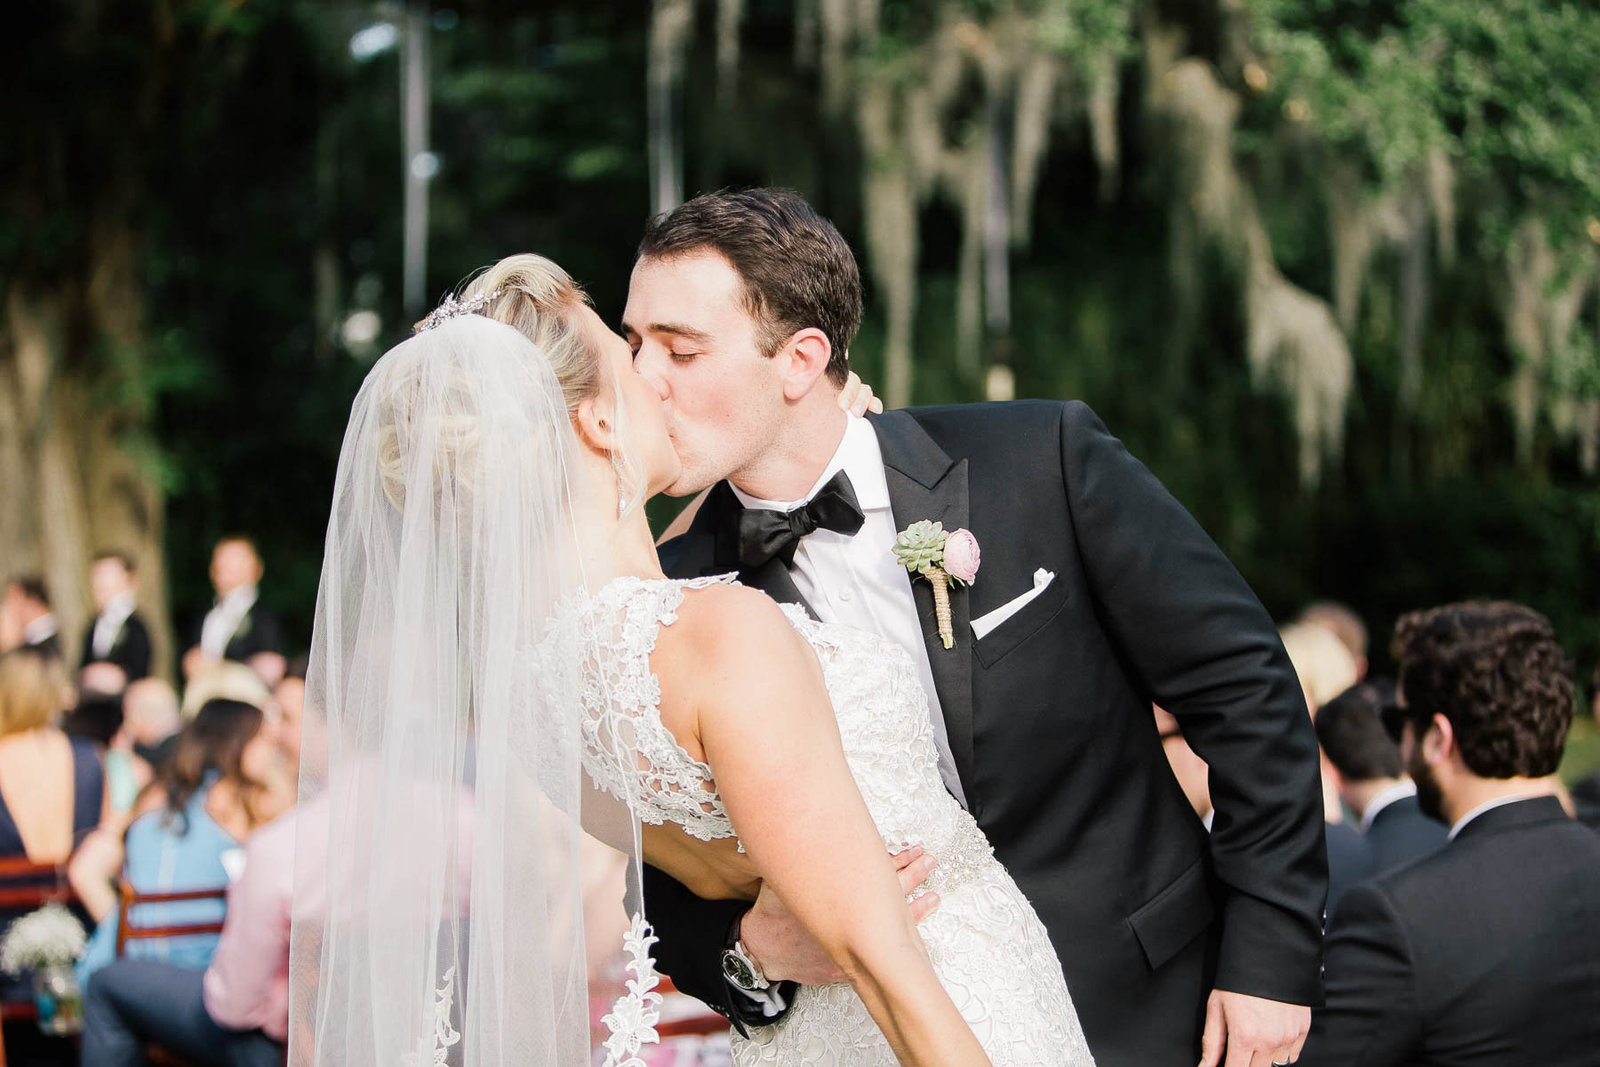 ceremony-magnolia-plantation-charleston-sc-lowcountry-wedding-kate-timbers-photography2214